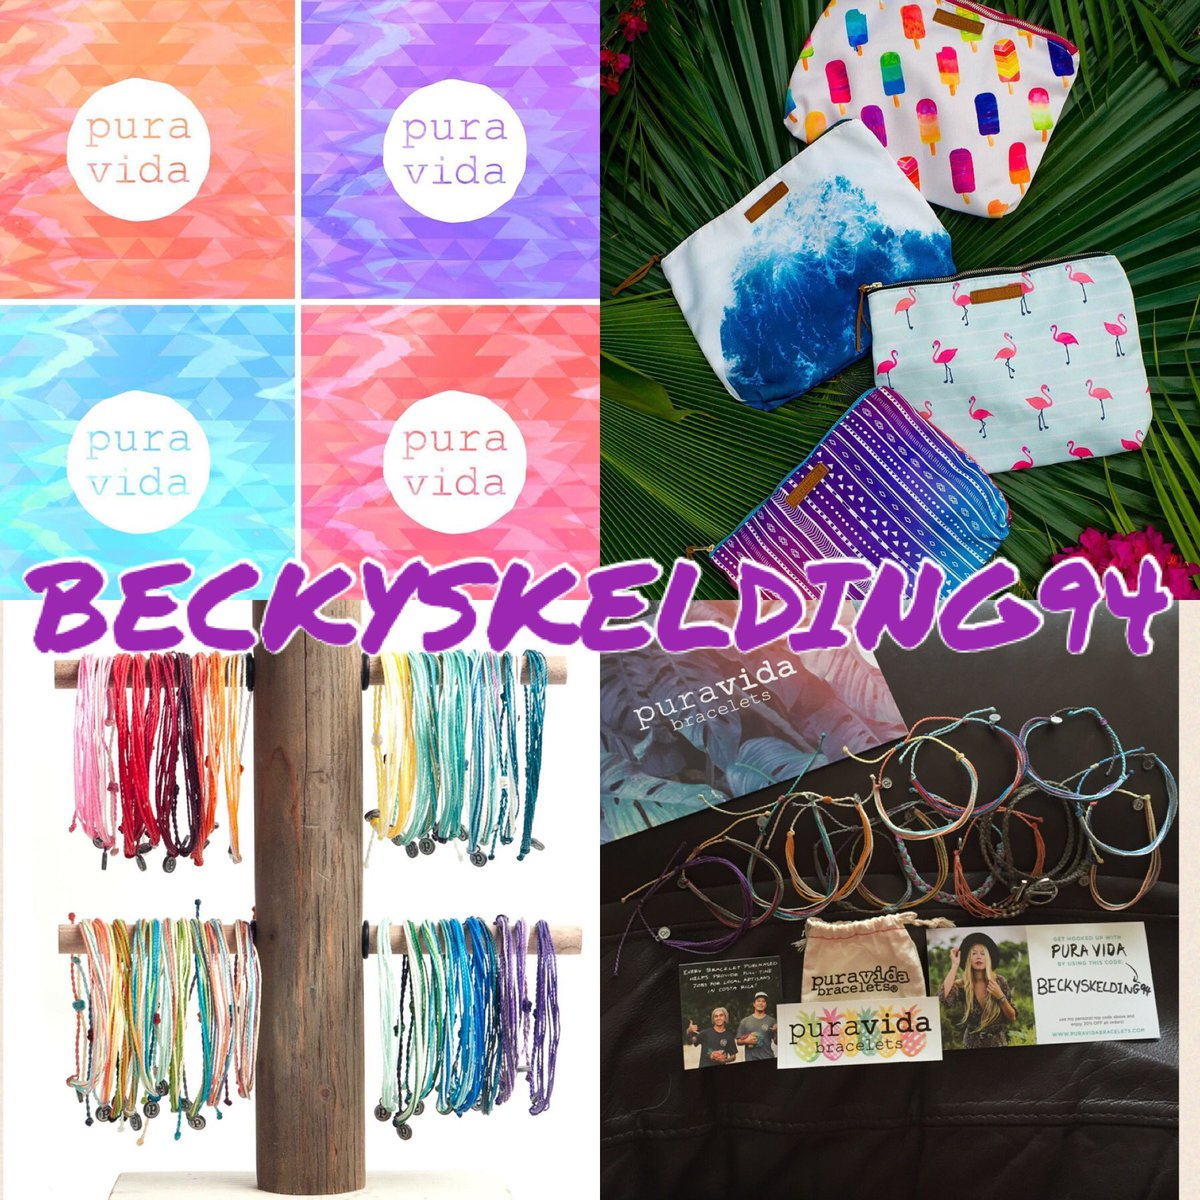 Cute anklets, bracelets, clutches etc take a look at @puravidabrac #puravida 20% off using code BECKYSKELDING94